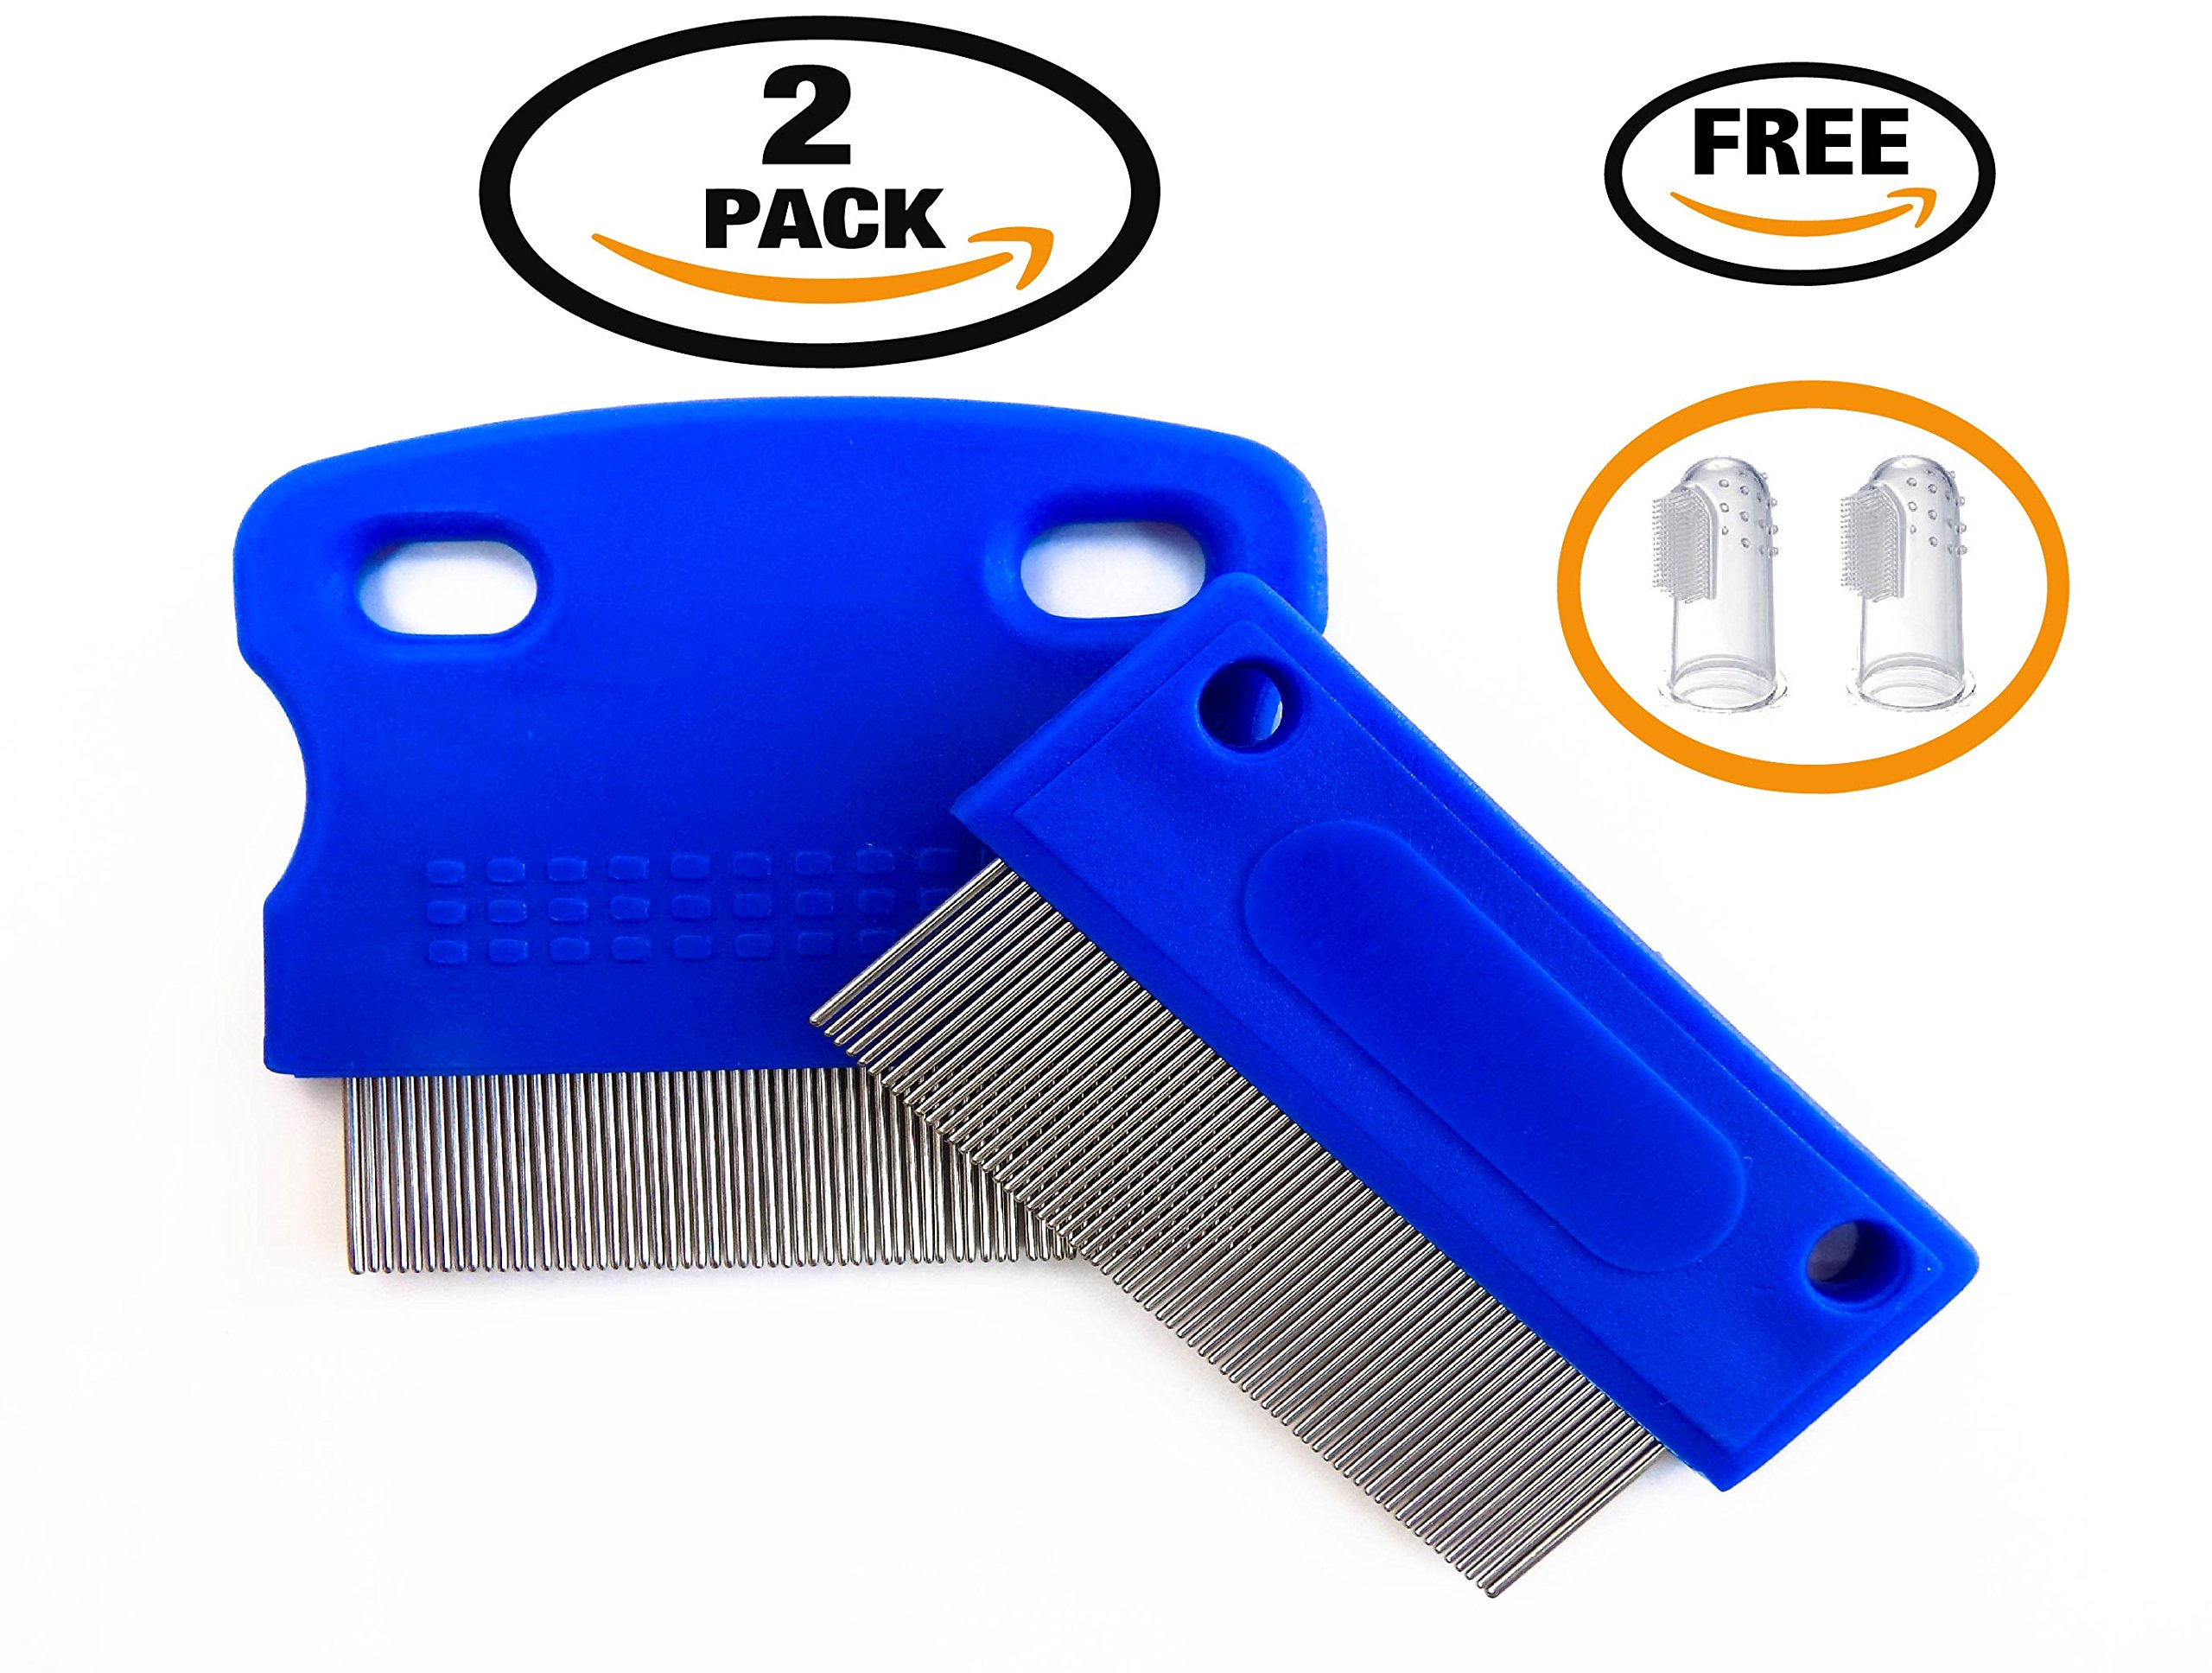 Dogs Comb, Tear Stain Remover, Dog Eye Cleaner, Gentle and Safe Remove Mucus, Stain, Crust, Gunk and Germs From your Eye Pet. Pet Grooming, Get Rid Lice, Fleas, 2 Combs with Rounded Teeth. Pet Combs.